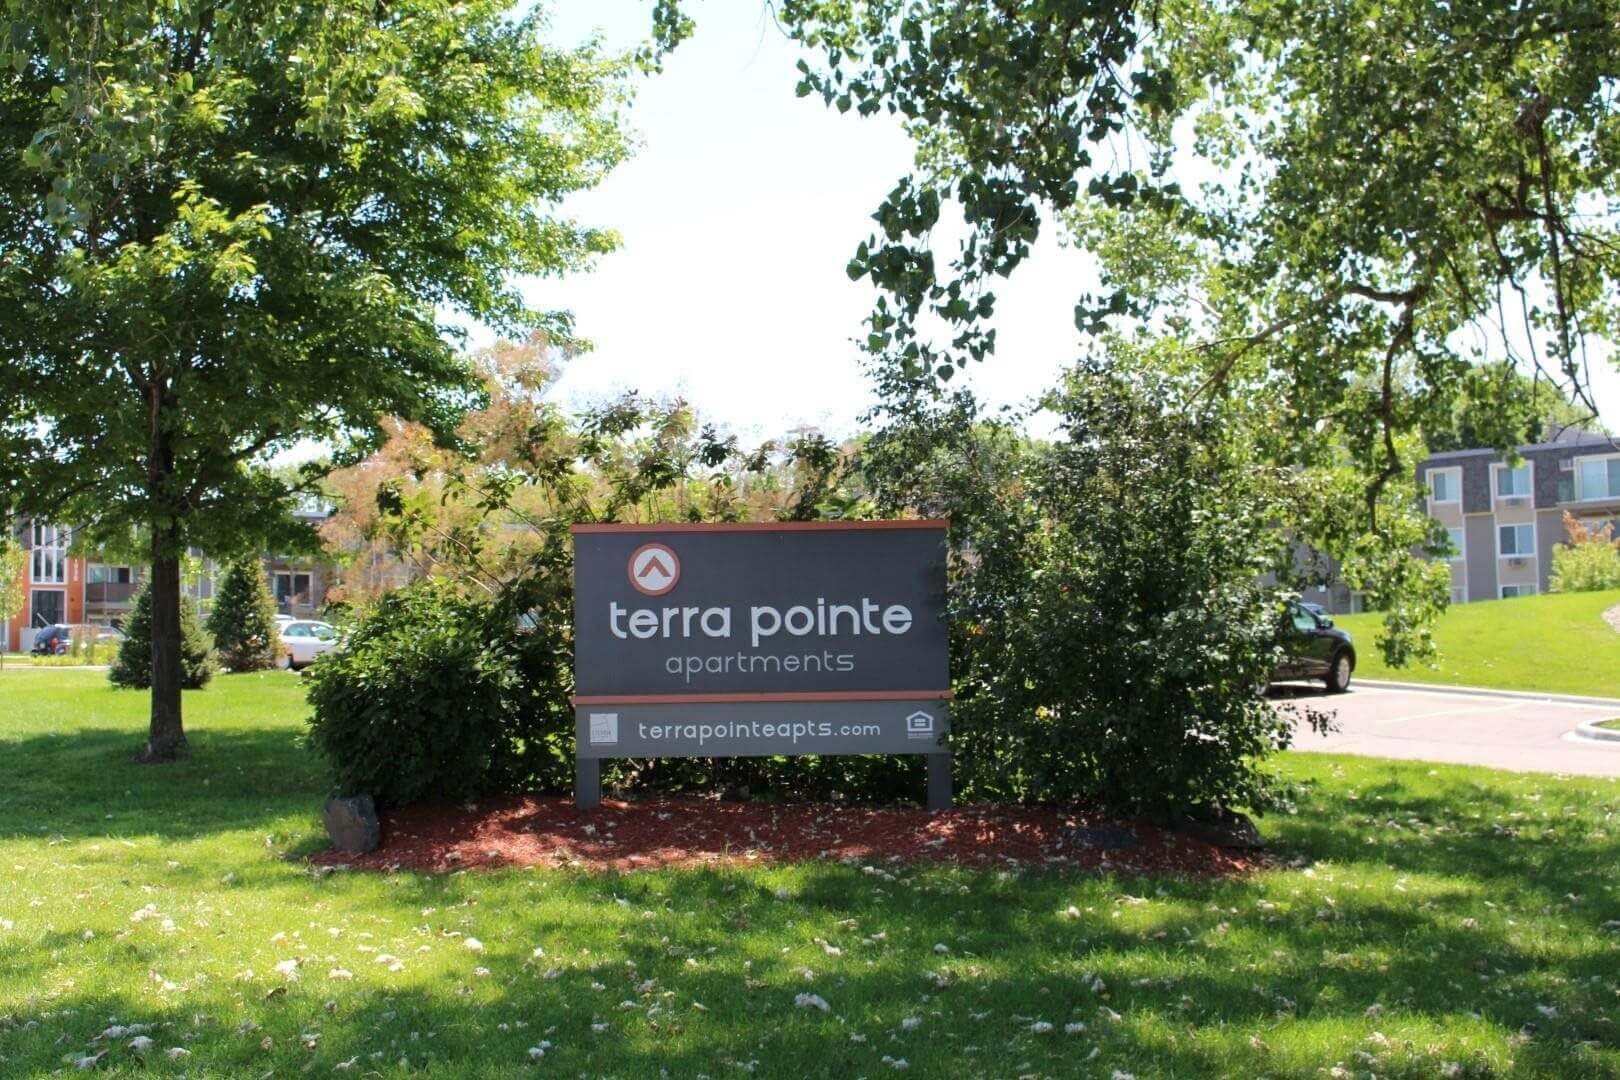 St Paul Mn Apartments Terra Pointe Photo Gallery